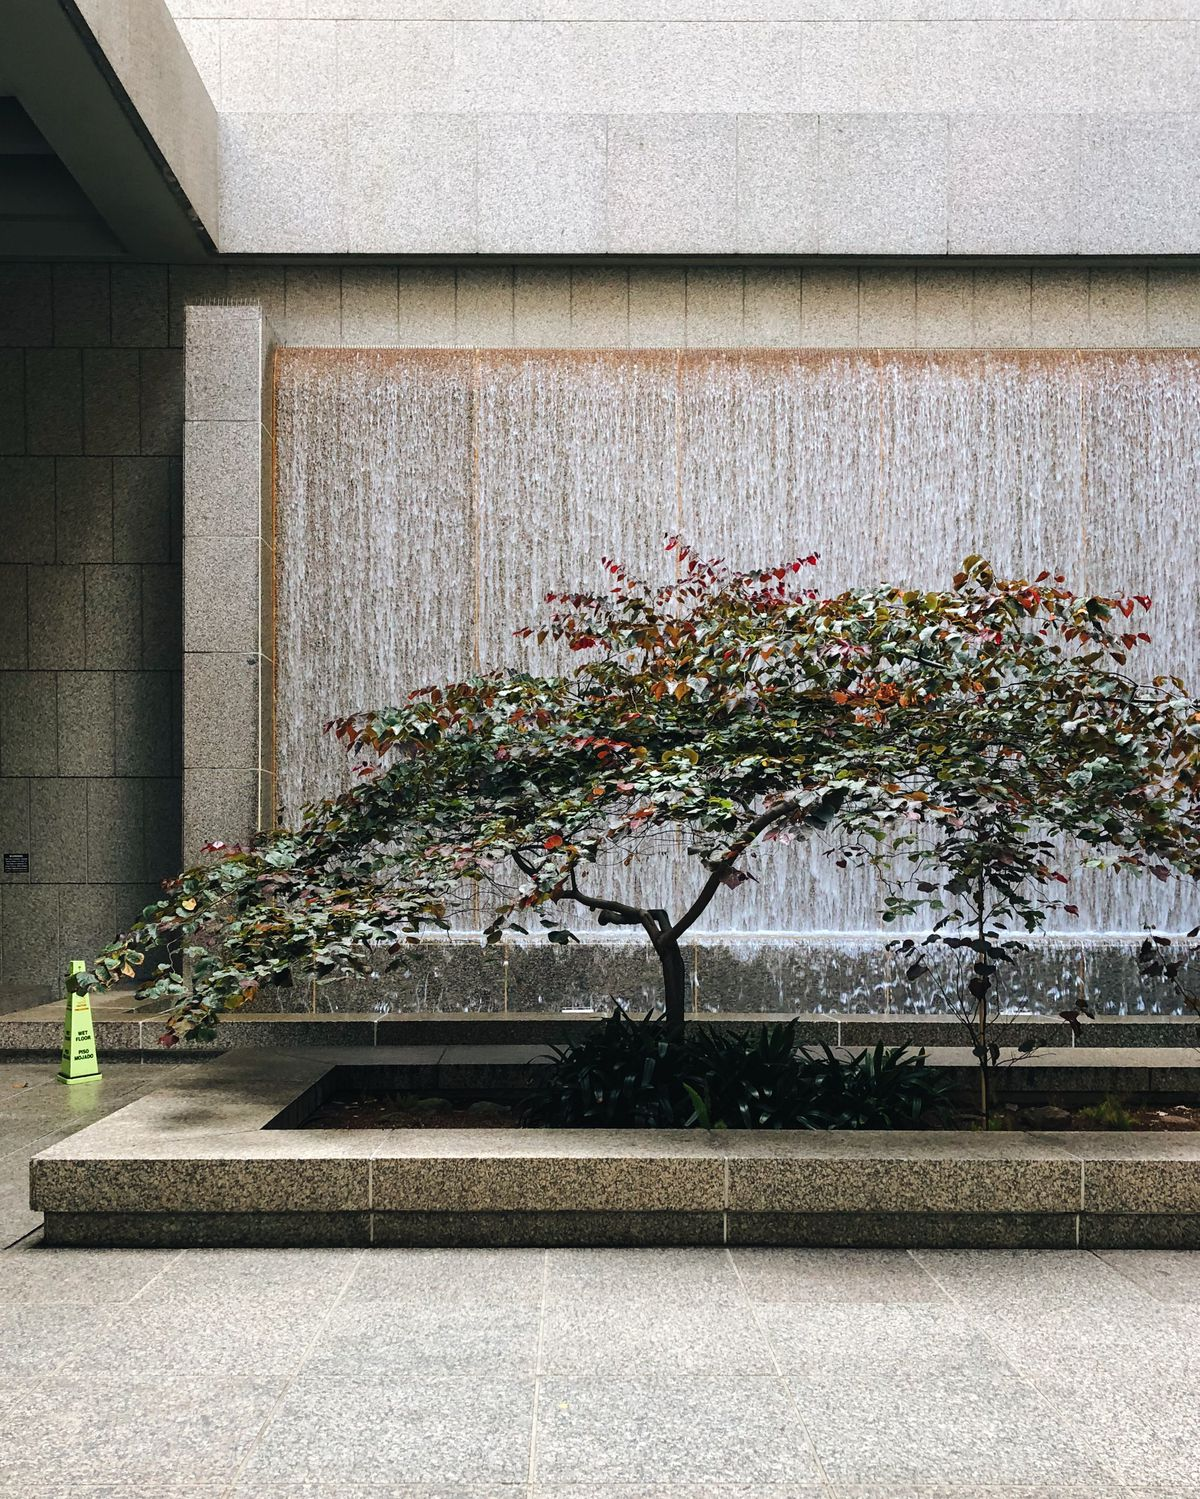 Two low trees with some pink flowers are planted in front of a waterfall sculpture.